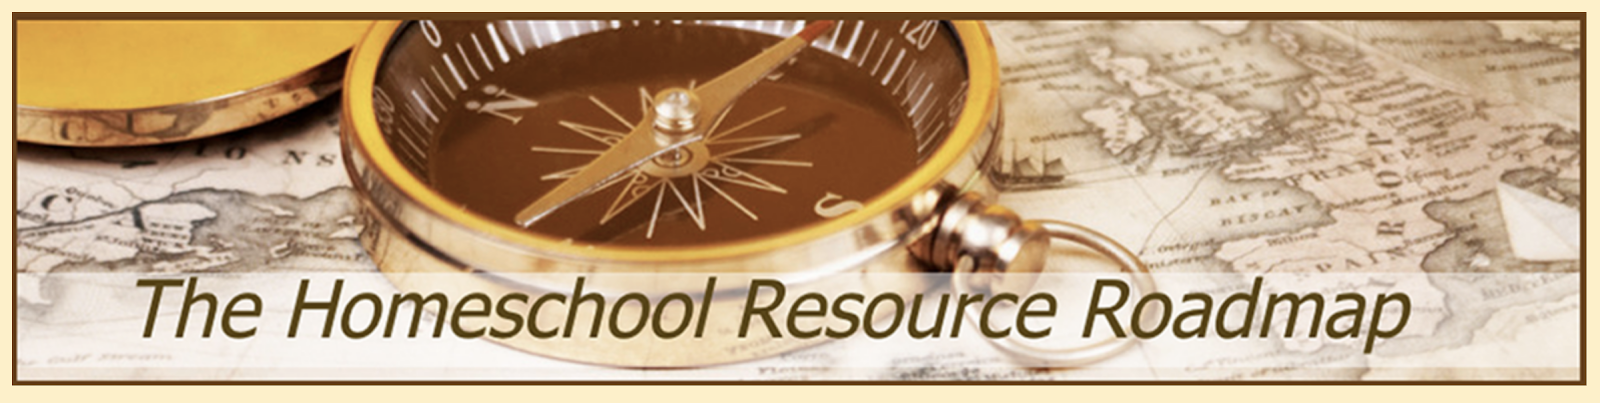 The Homeschool Resource Roadmap